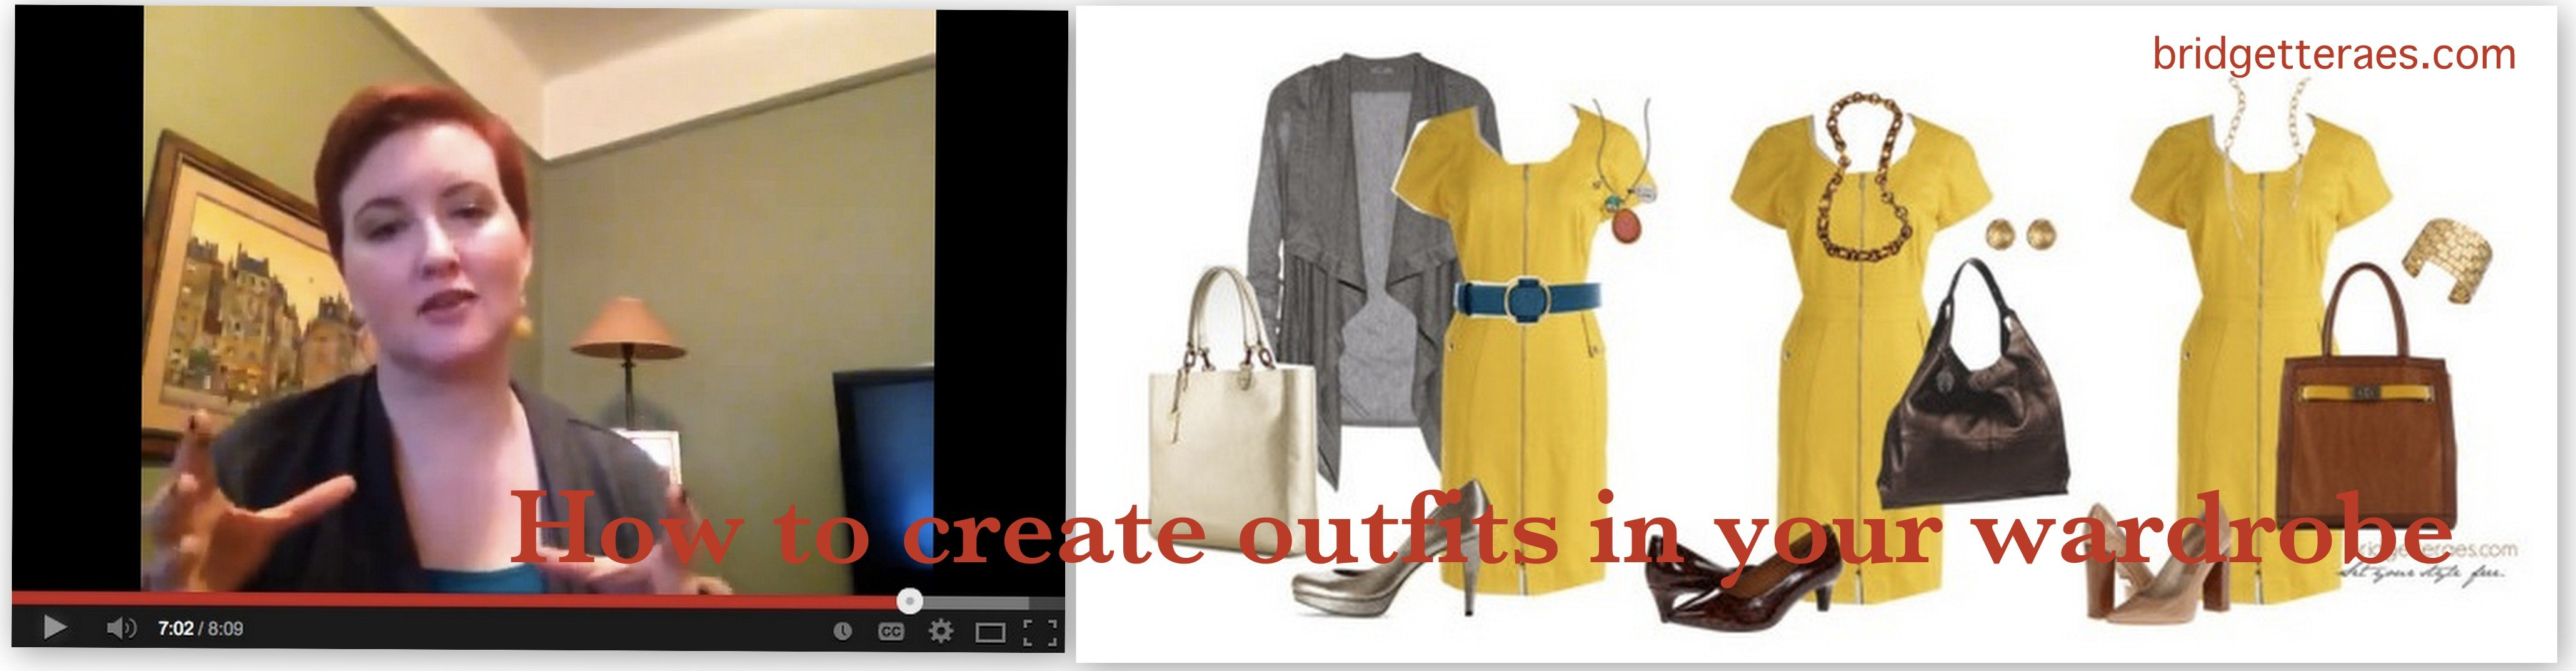 How to Create Outfits in Your Wardrobe (Video)